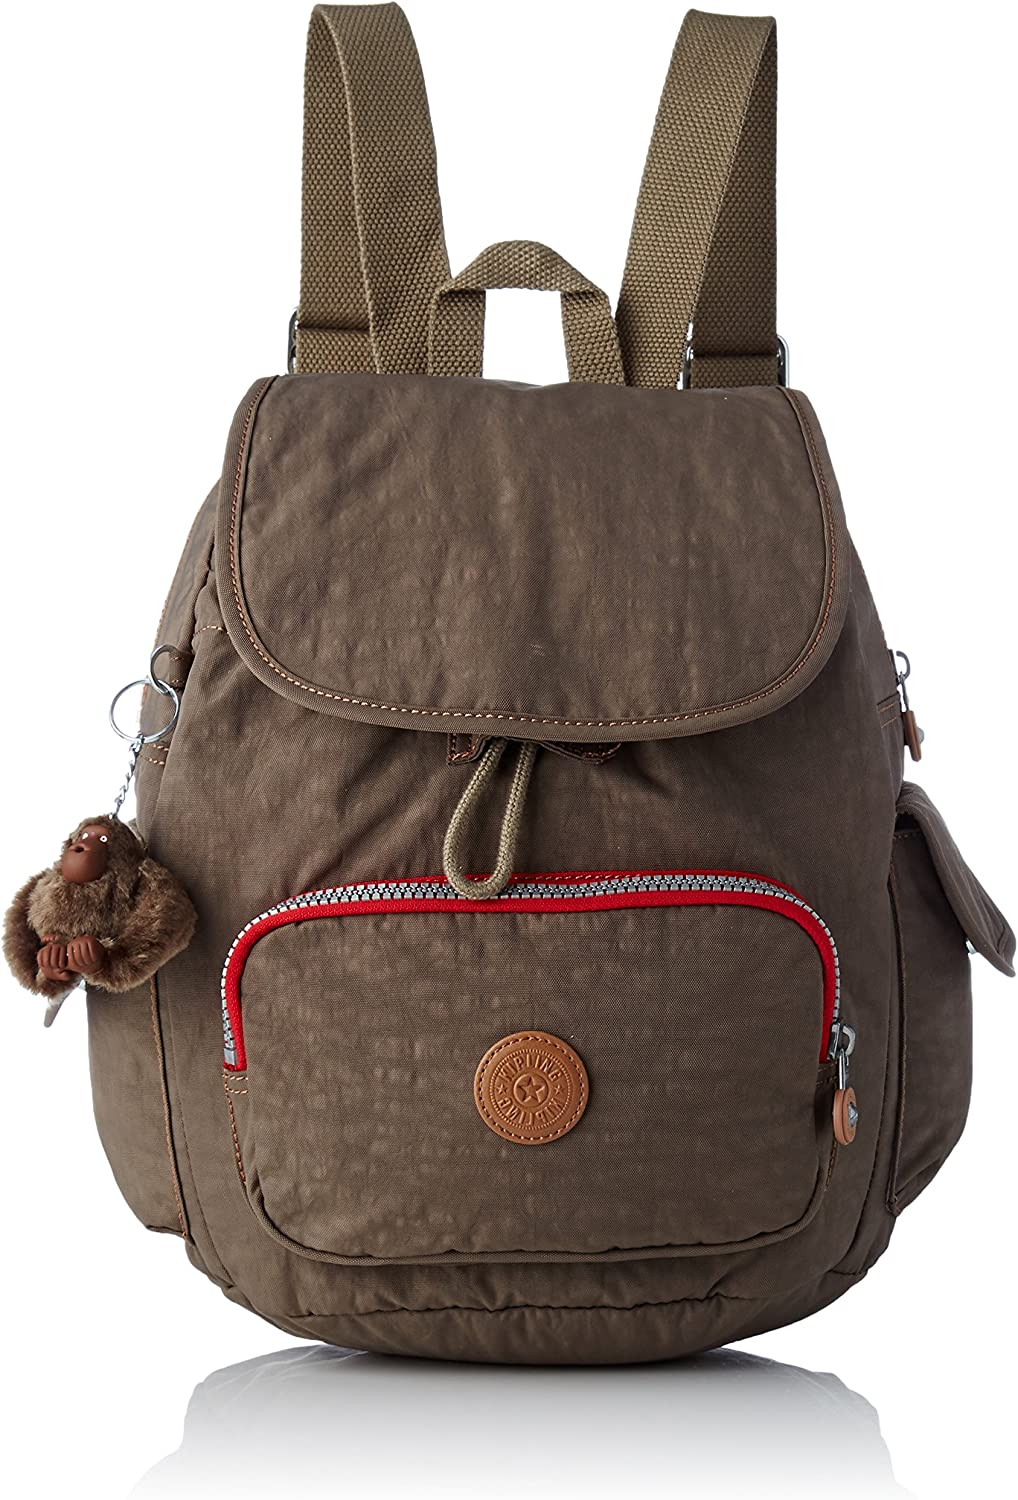 Kipling CITY PACK S True Beige C